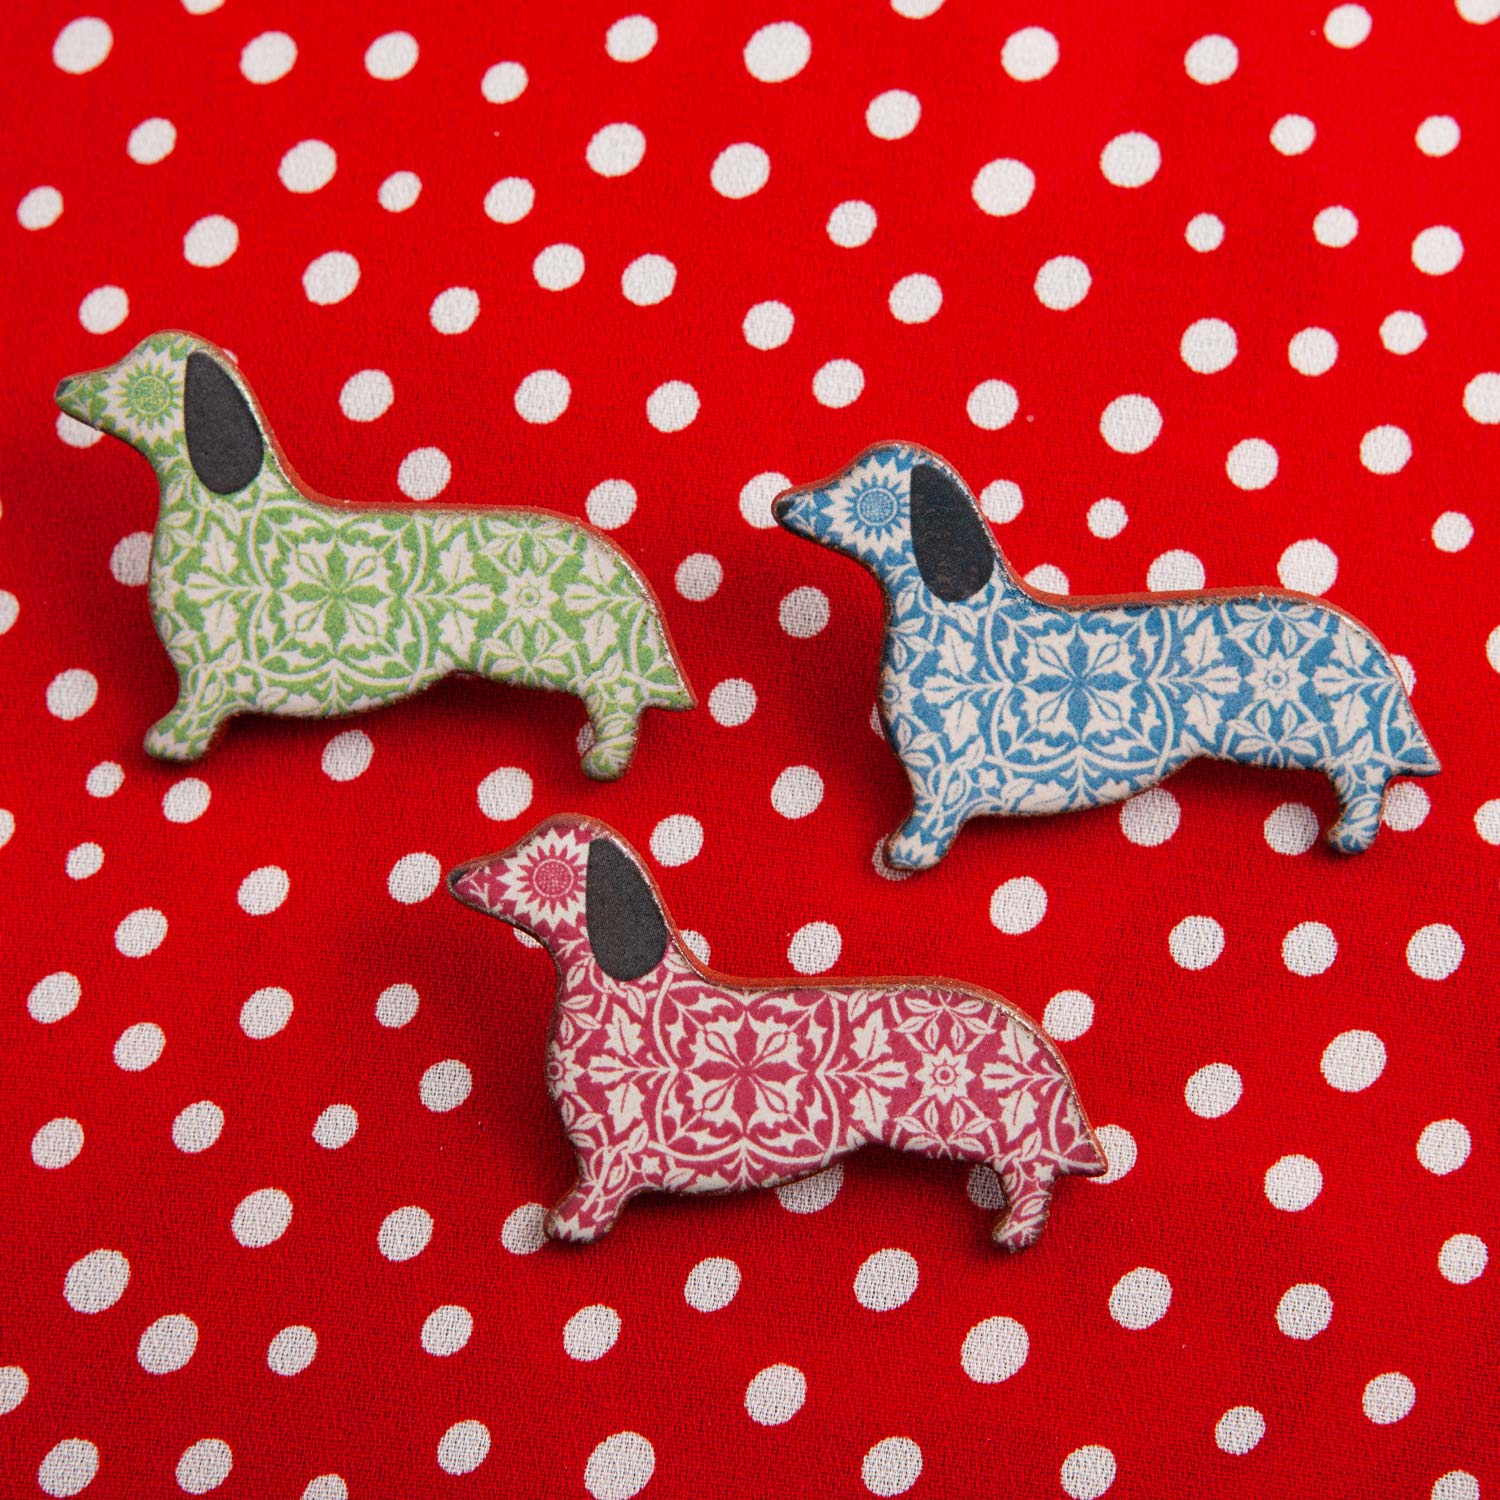 Dog Lover Gifts available at Dog Krazy Gifts – Ceramic Red William Morris Dachshund Brooch by Mary Goldberg of Stockwell Ceramics, Just Part Of Our Collection Of Daxie Themed Gifts, Available At www.dogkrazygifts.co.uk